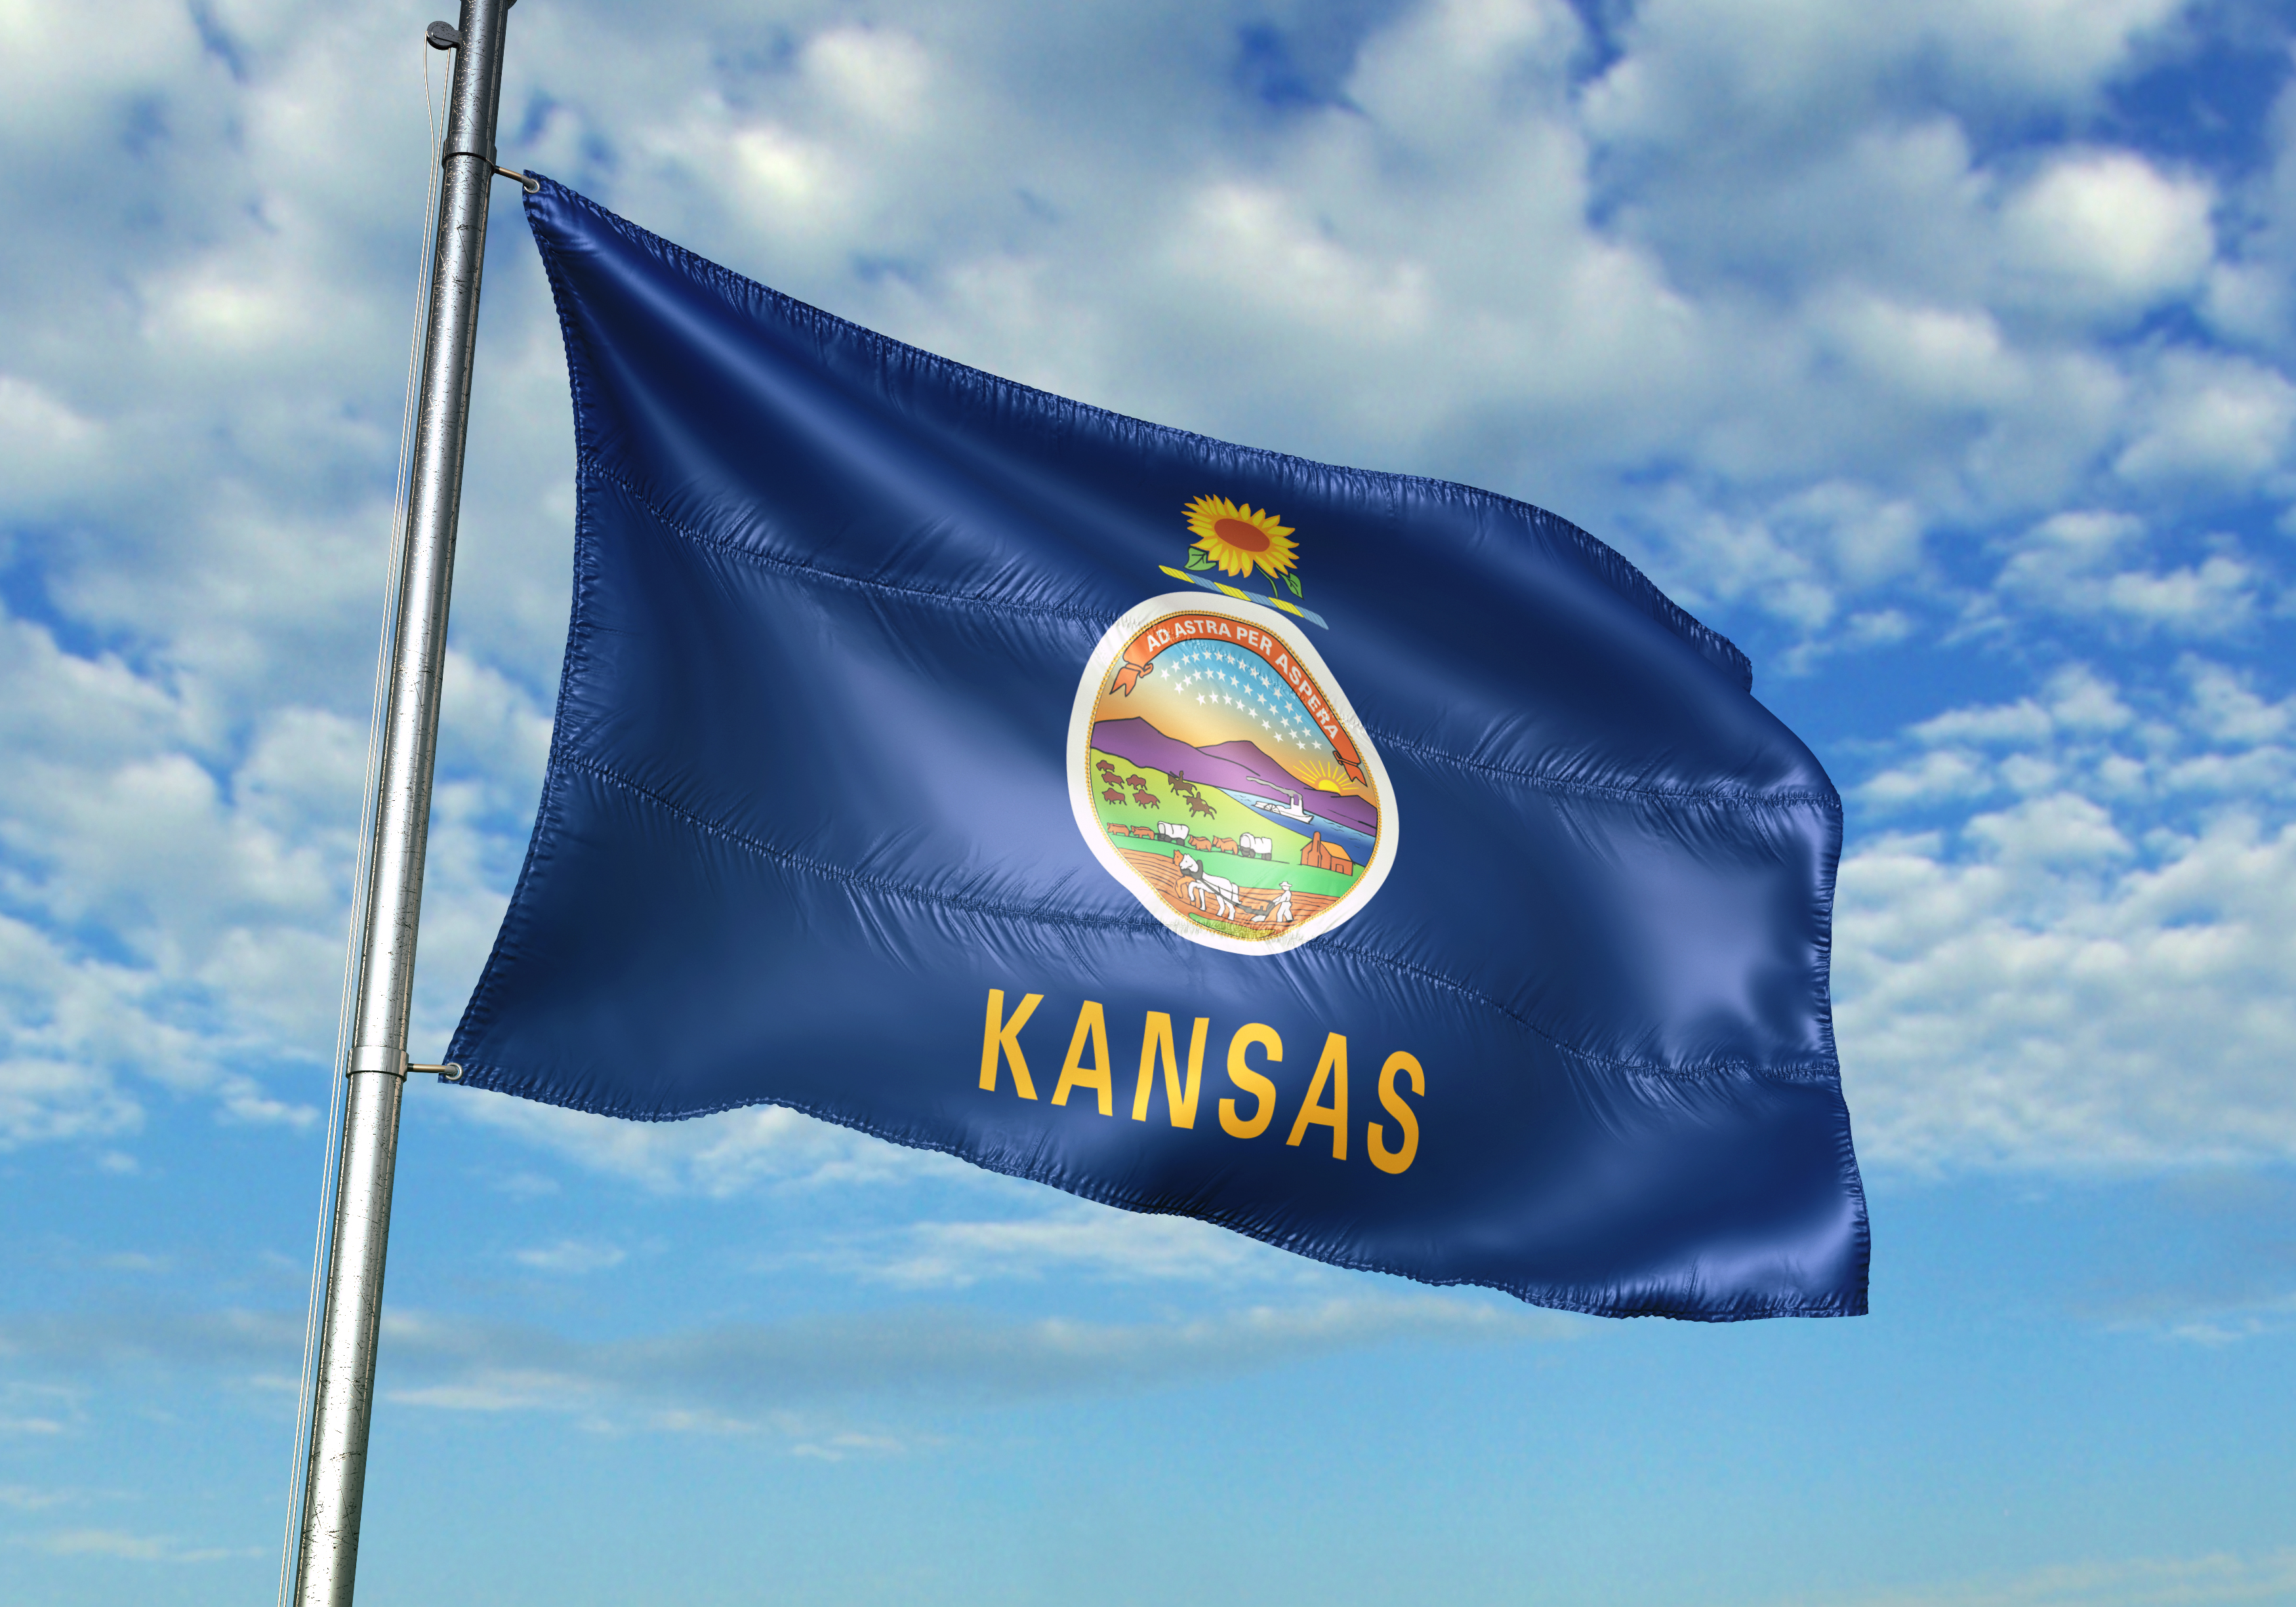 Kansas flag fluttering against a blue sky dotted with white clouds on a sunny day